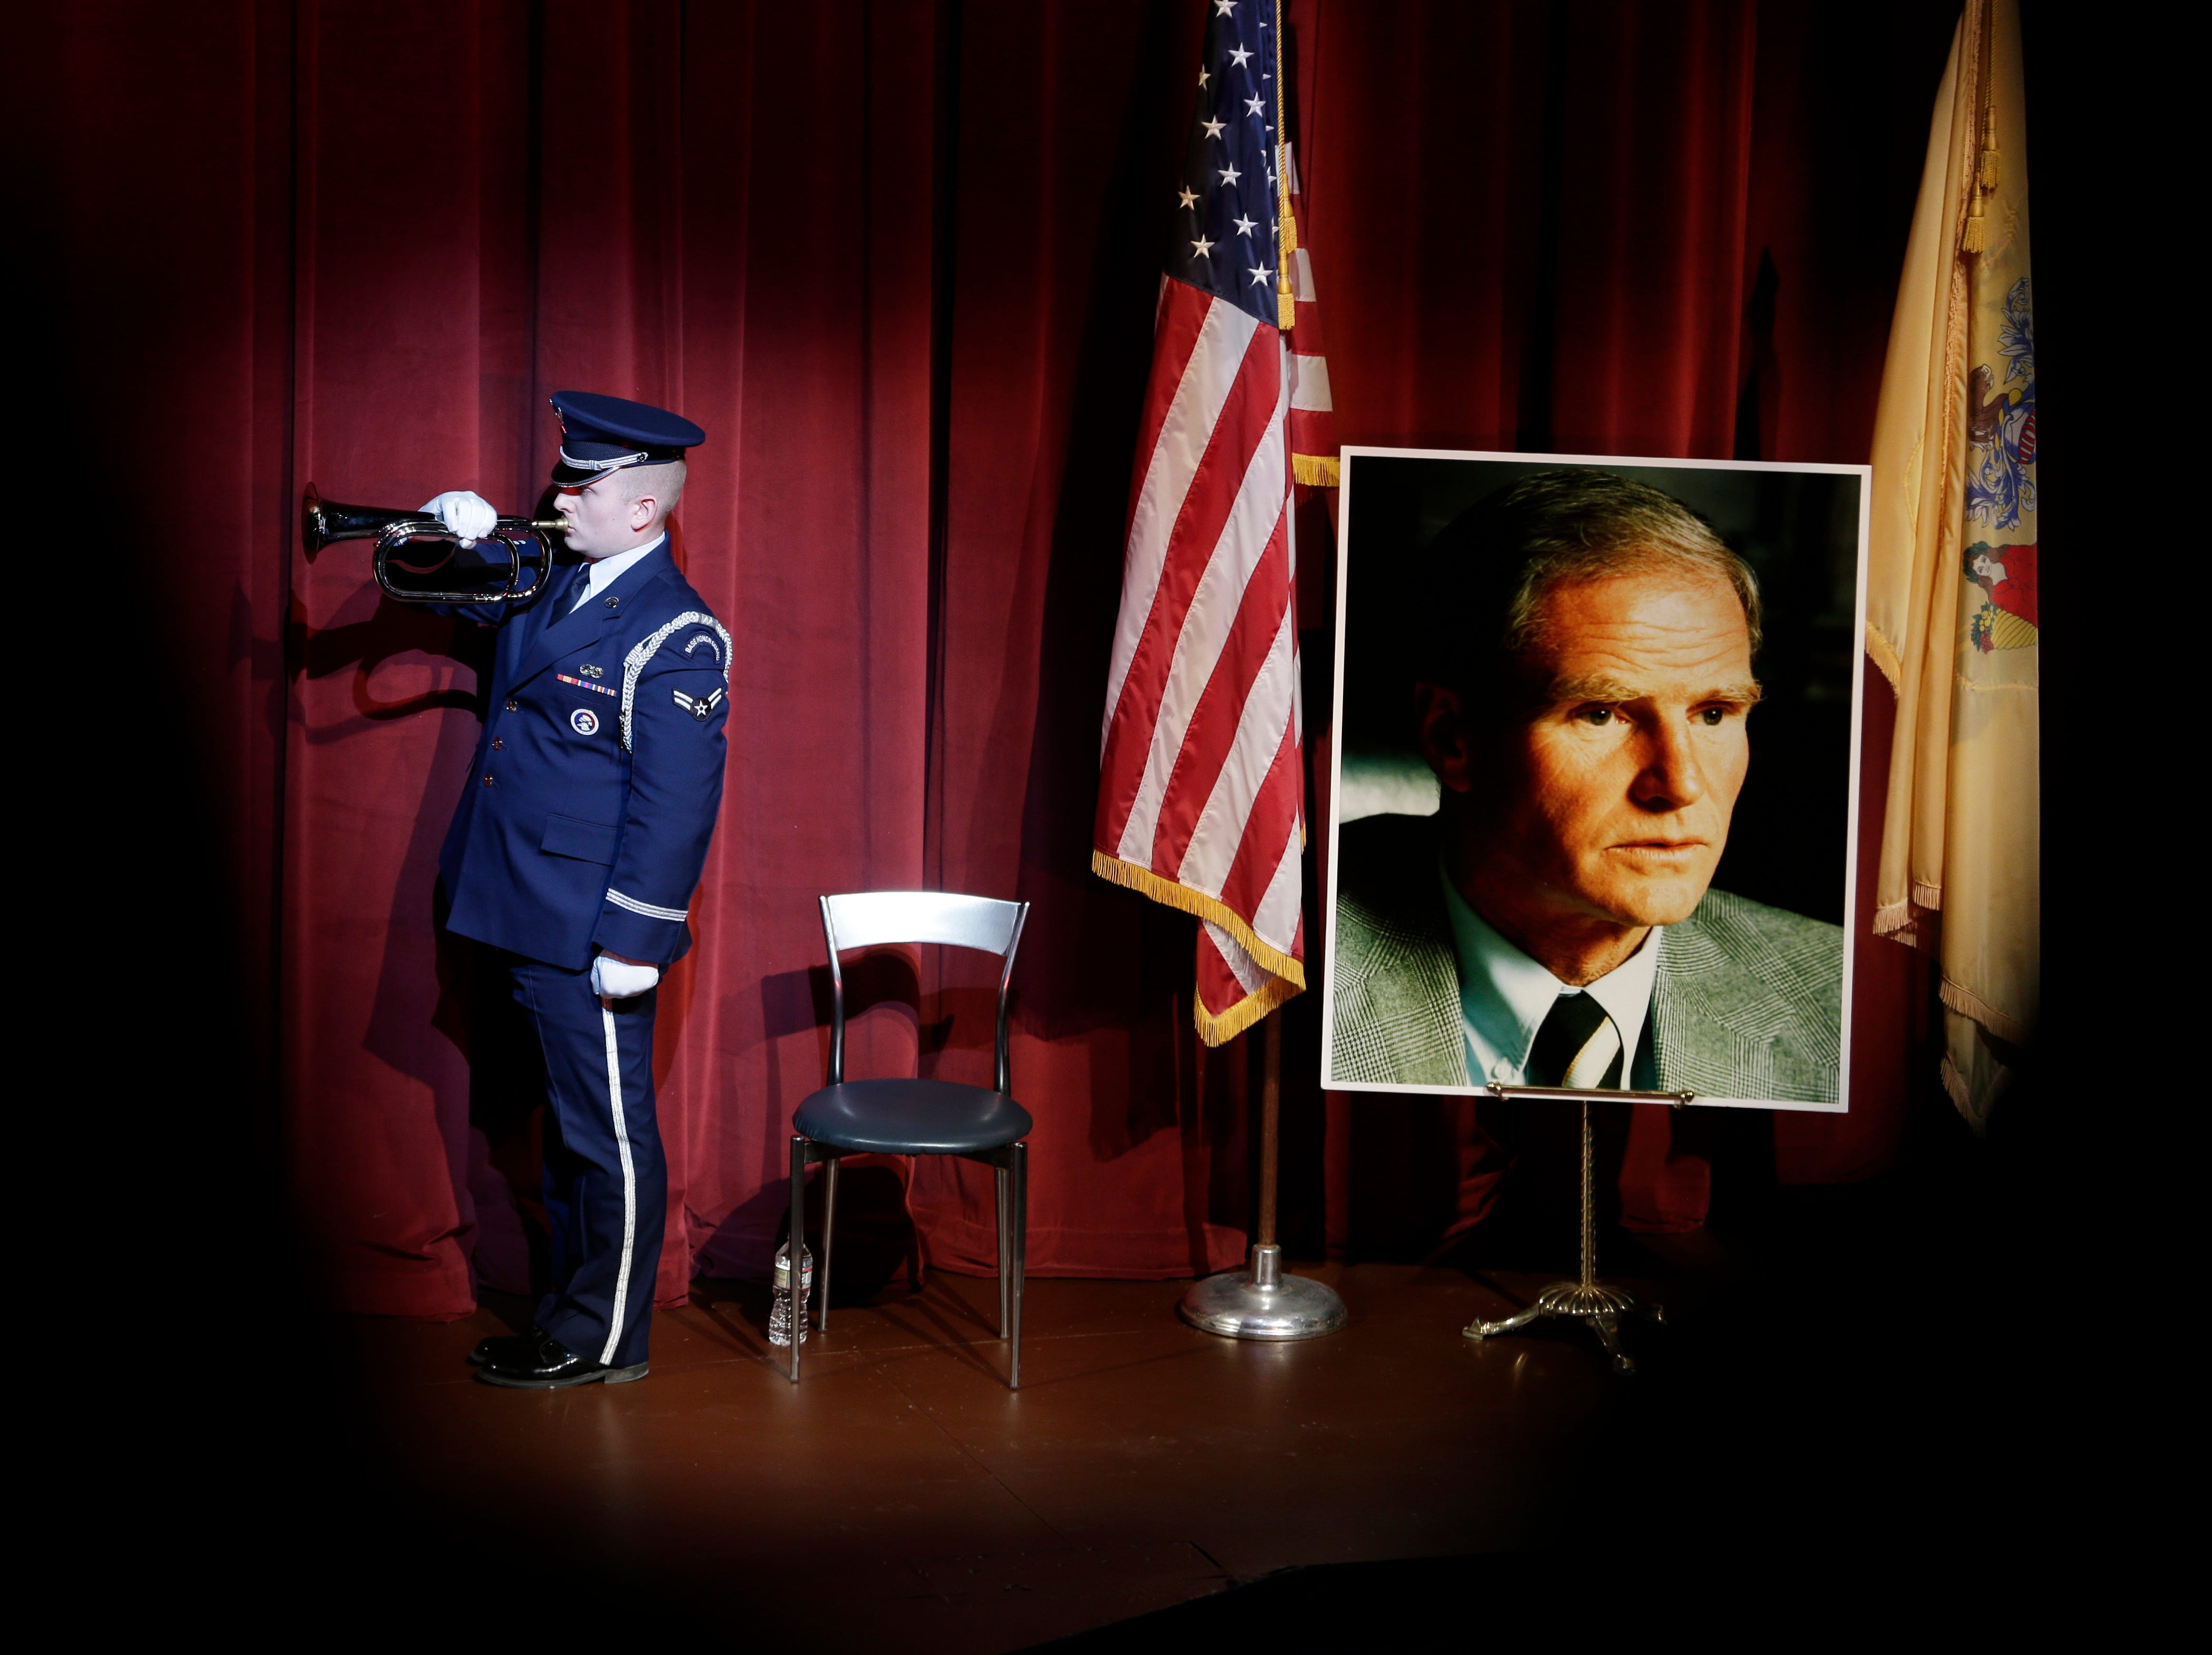 """Jan. 8, 2018: A service member plays """"Taps"""" next to a photograph of former New Jersey Gov. Brendan Byrne during his memorial service in Millburn, N.J. Byrne died at age 93. Several former governors and current members of the congressional delegation are attending the memorial service of the two-term Democrat. Byrne is remembered for being a bipartisan leader and for authorizing the law permitting gambling in Atlantic City."""